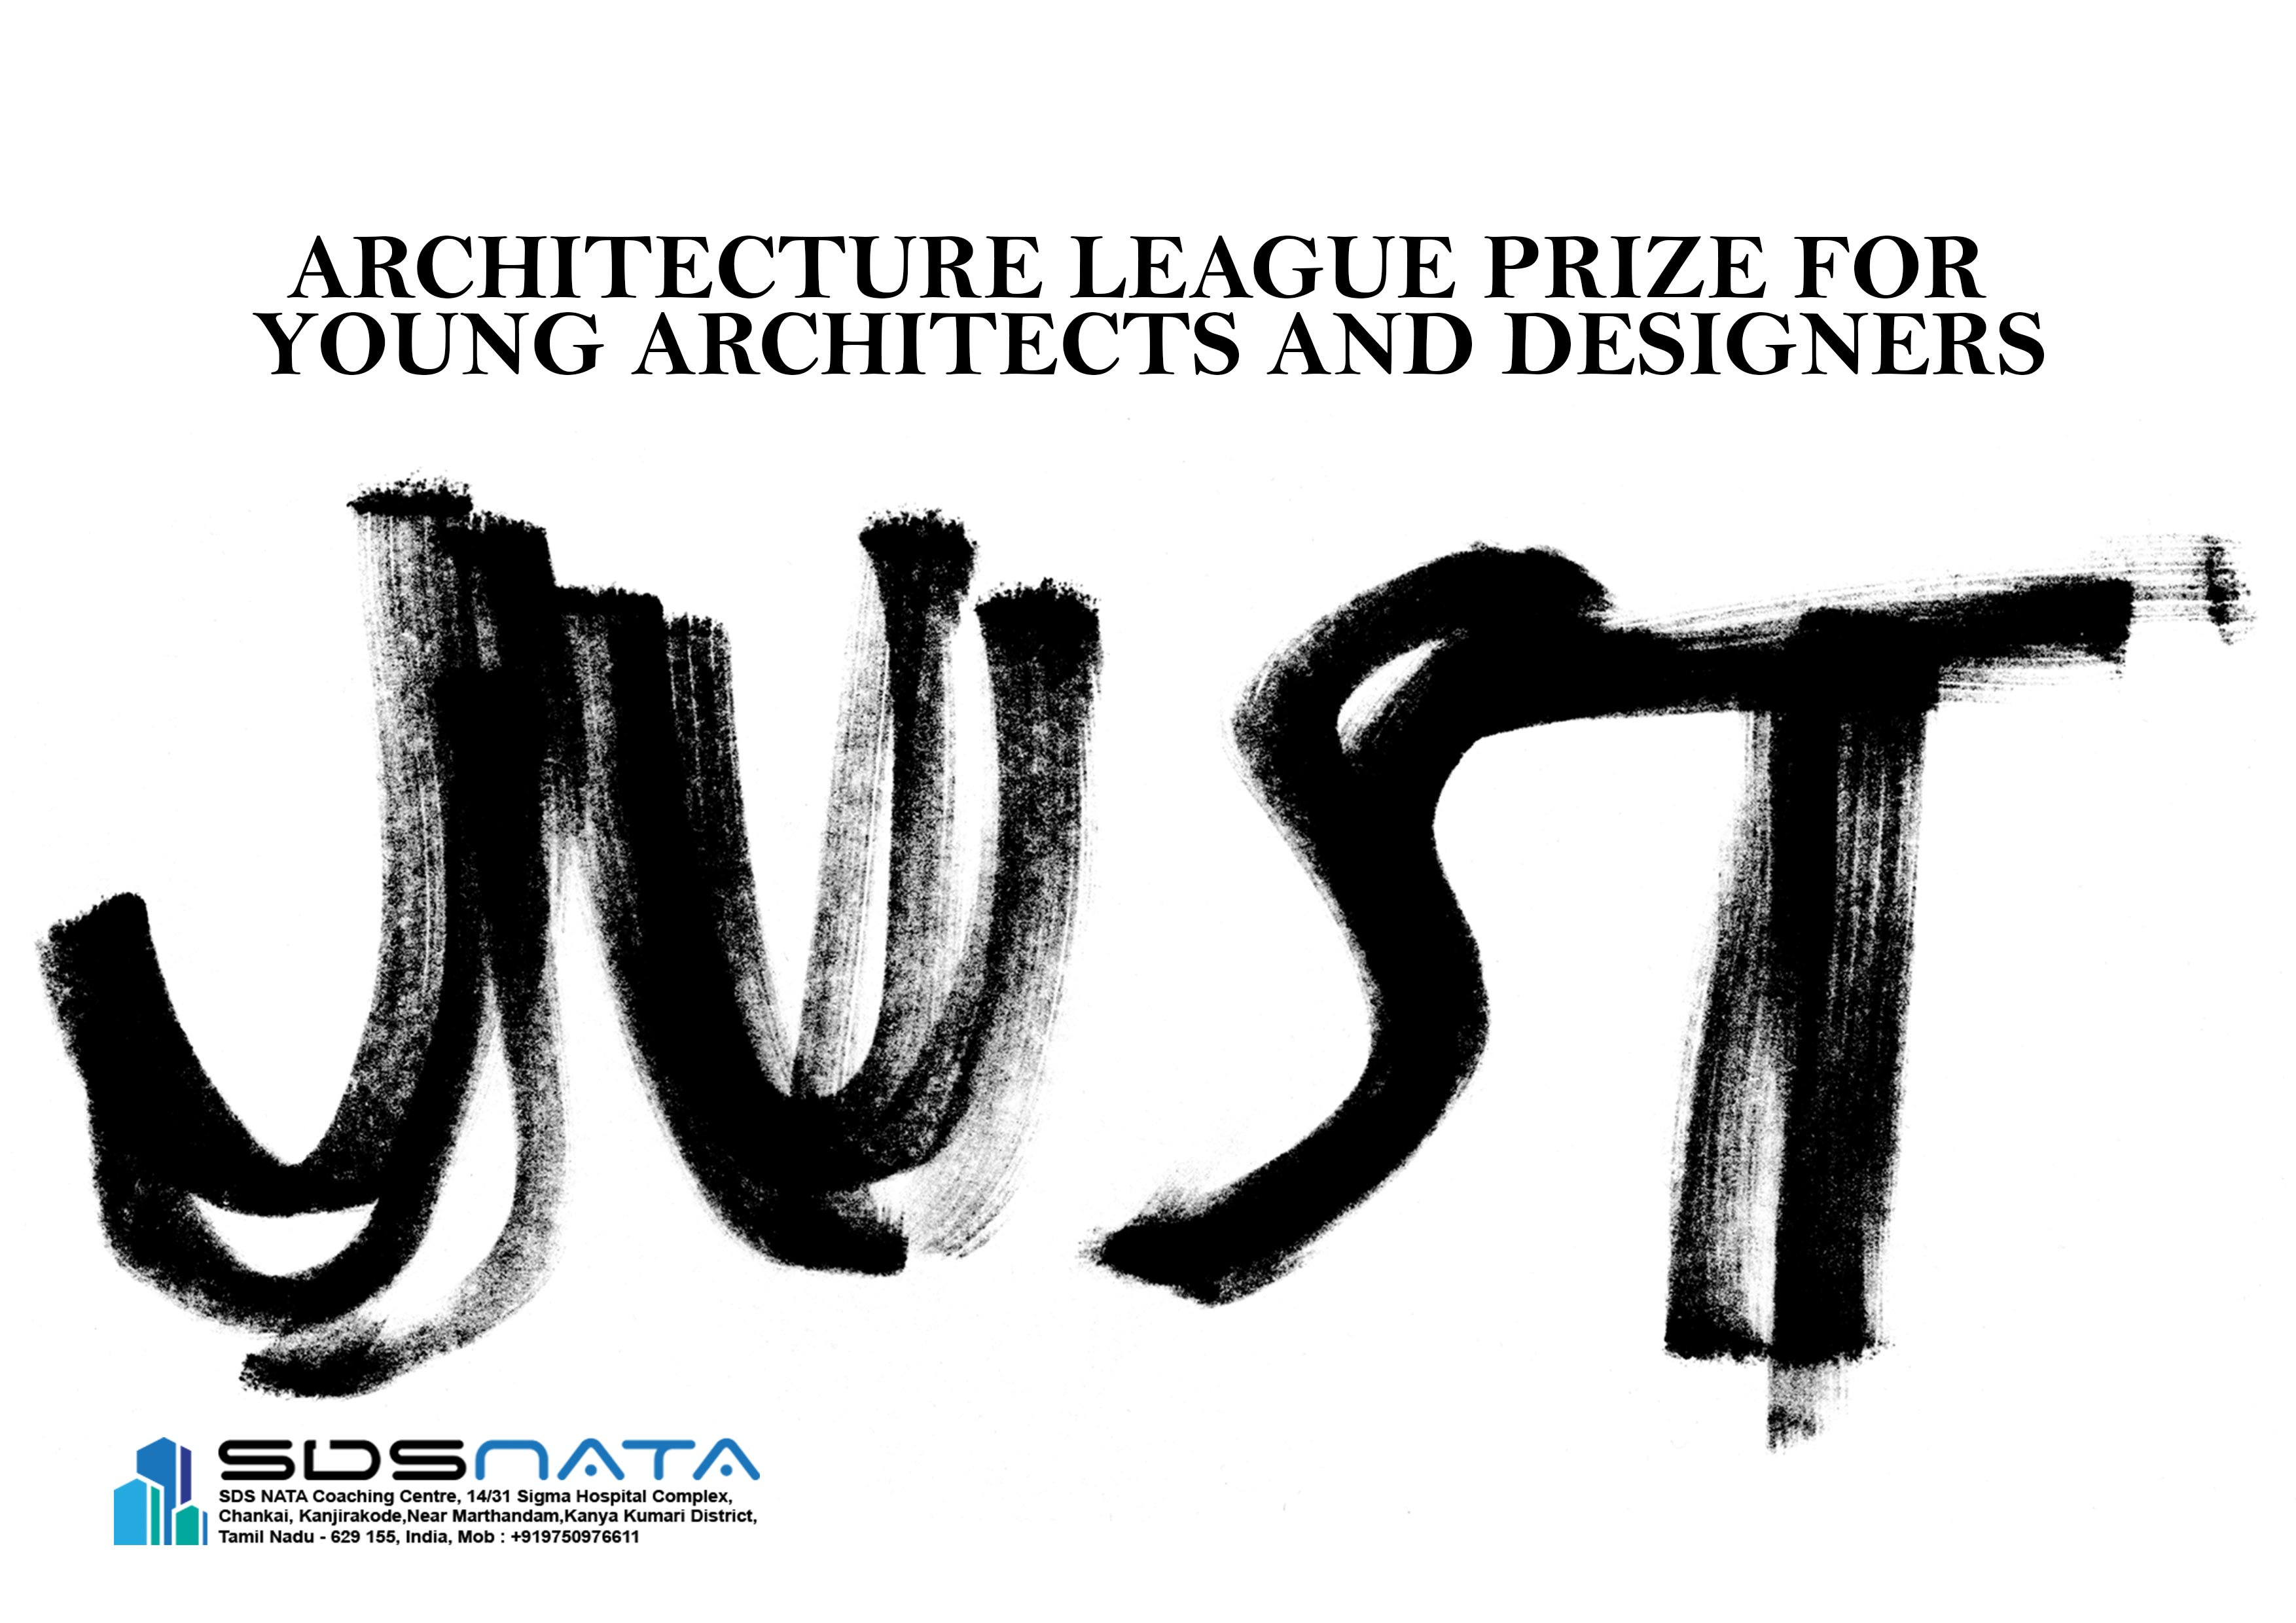 Architecture League Prize for Young Architects and Designers